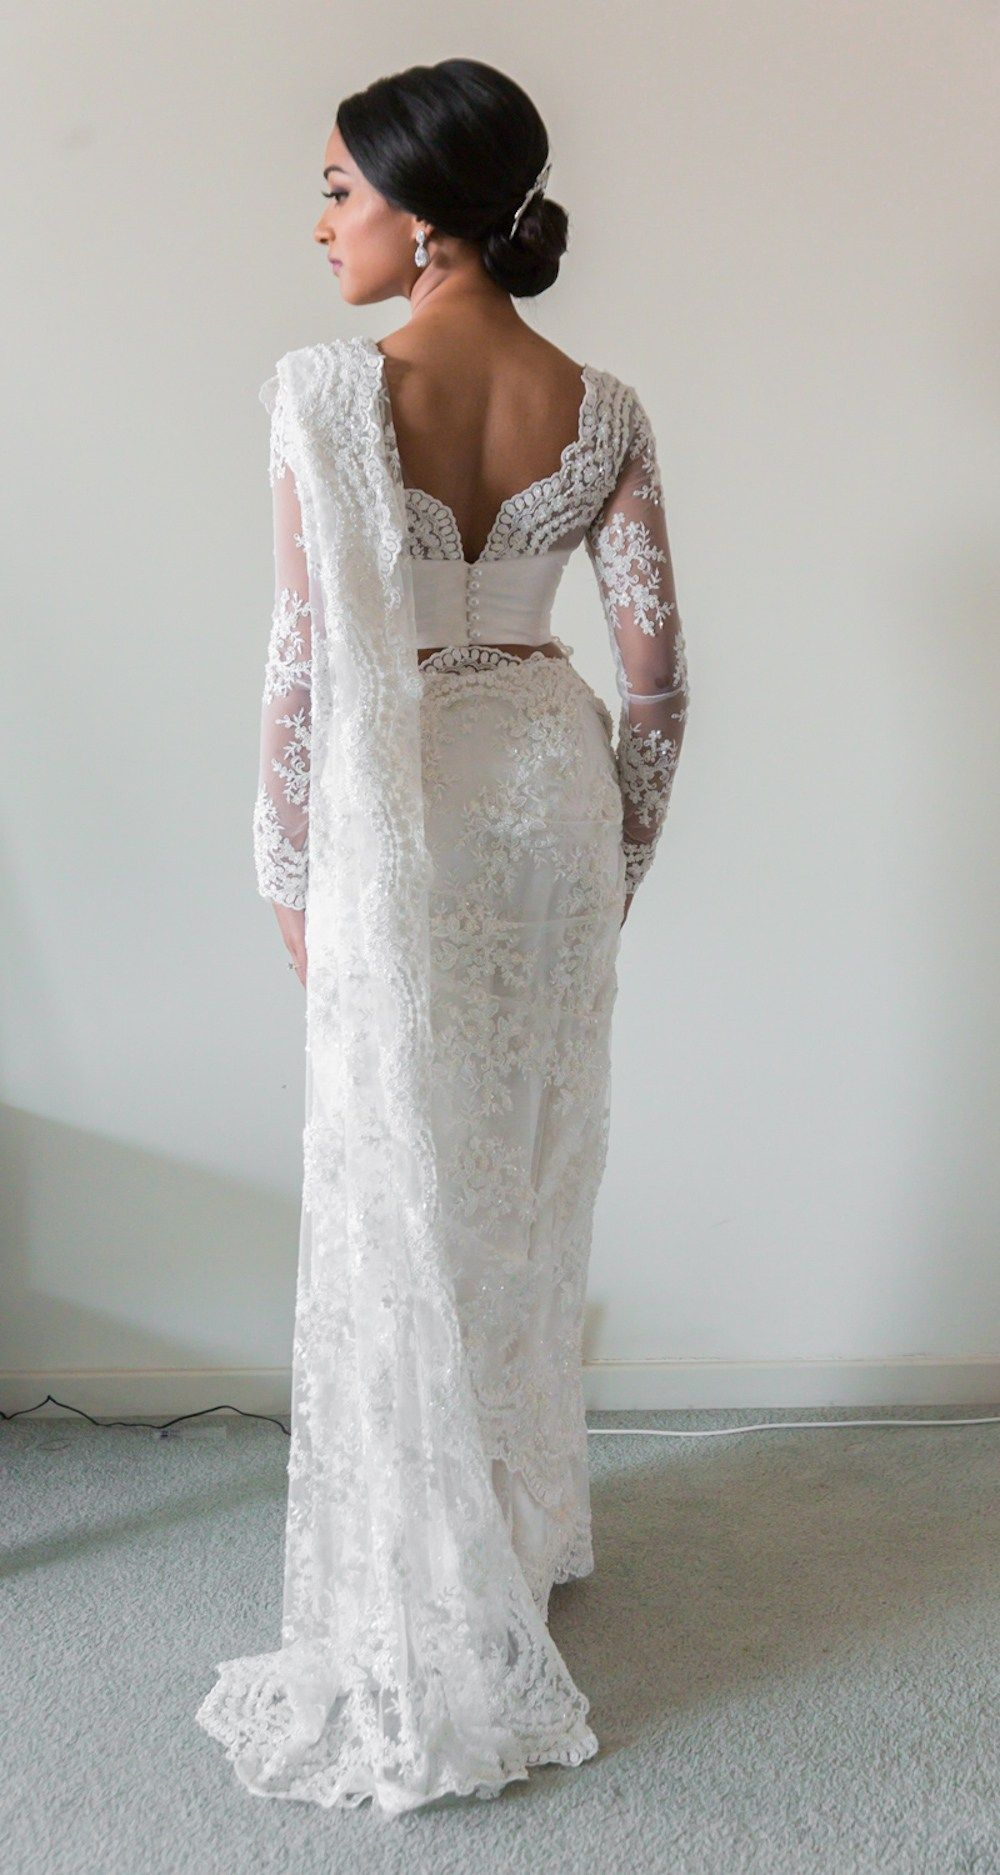 South asian wedding dresses  White Bridal Lace Saree  South Asian Wedding Blog  Think Shaadi